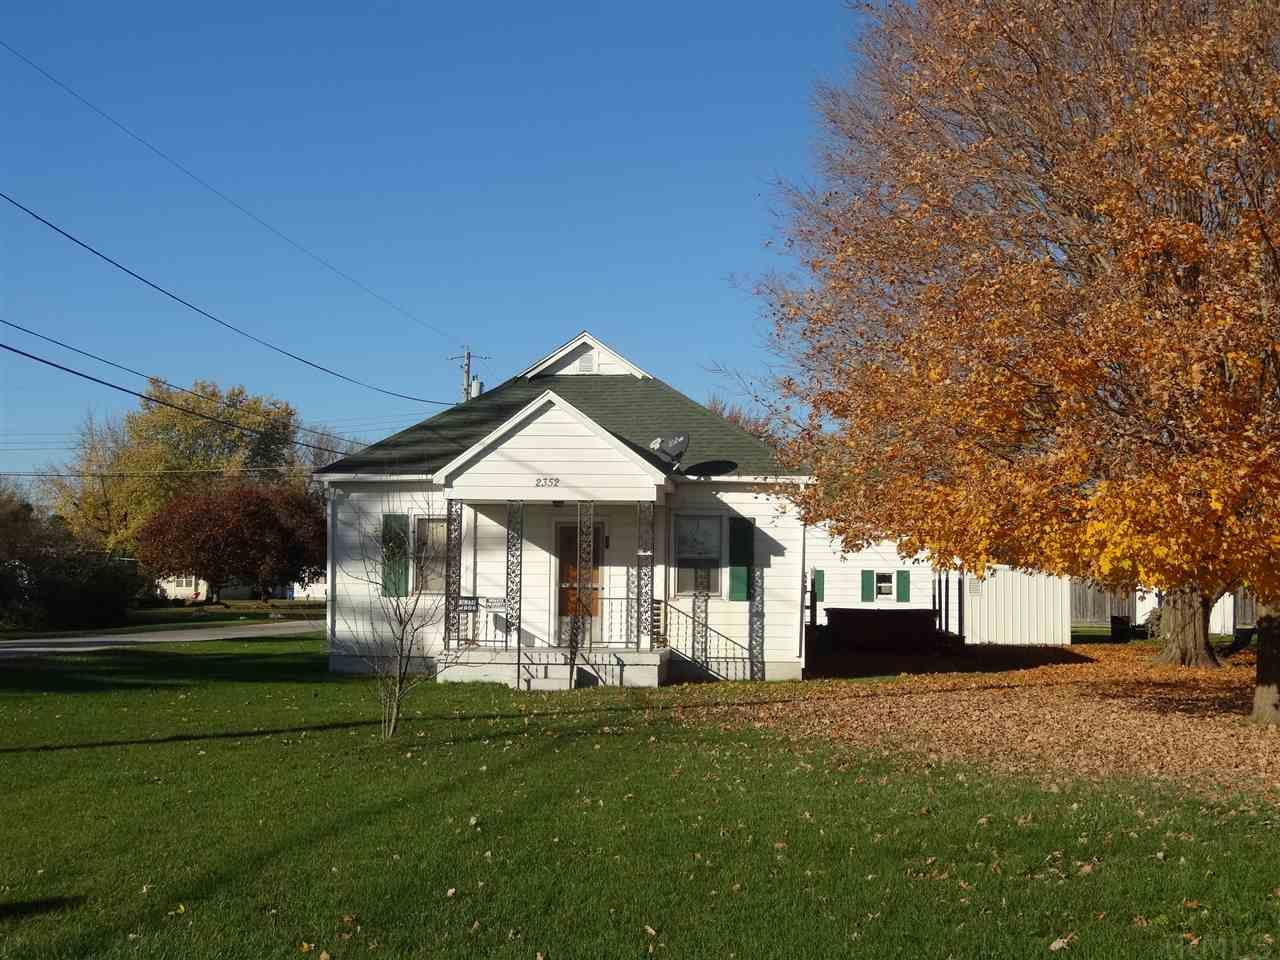 2352 W 13th, Marion, IN 46953